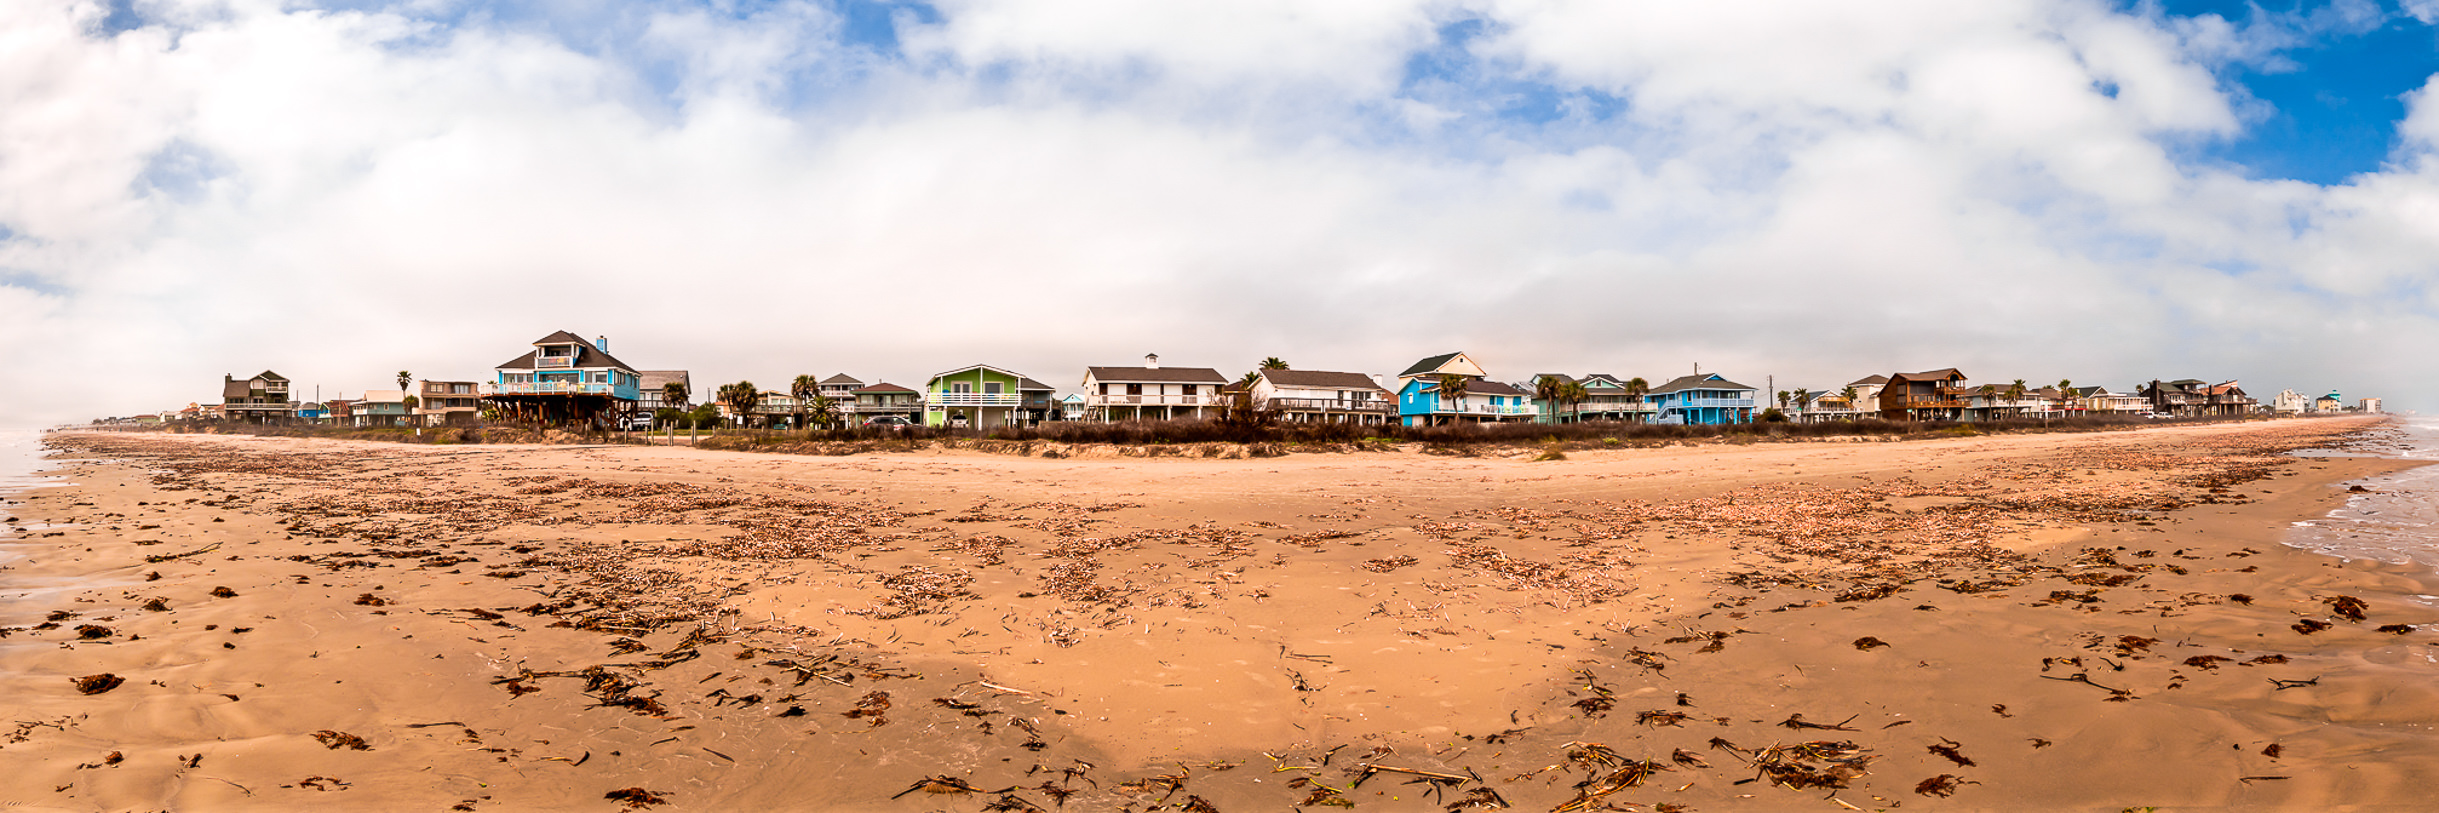 Beach houses line the seaweed-covered sandy beach at Galveston, Texas